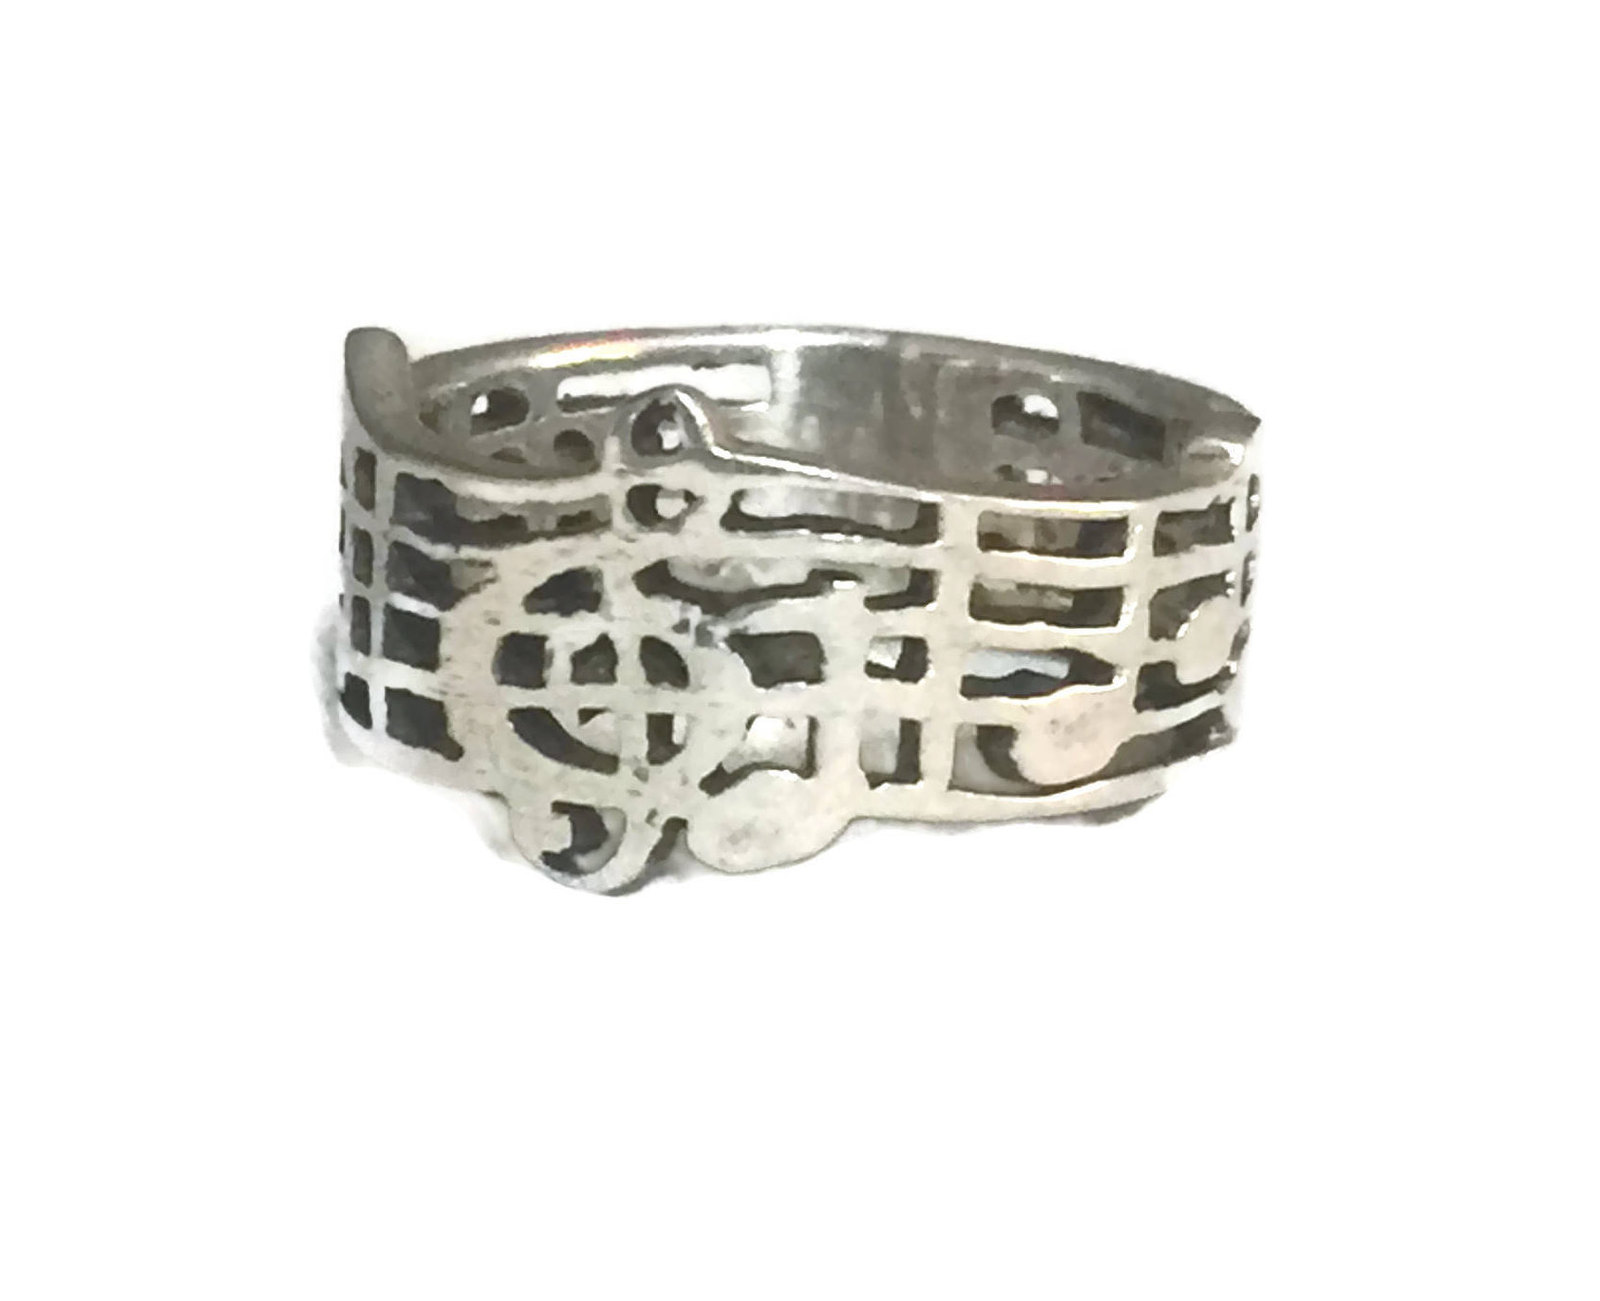 Vintage Music Musical Notes & Clef Sterling Silver Ring or Band Ring Size 6.25